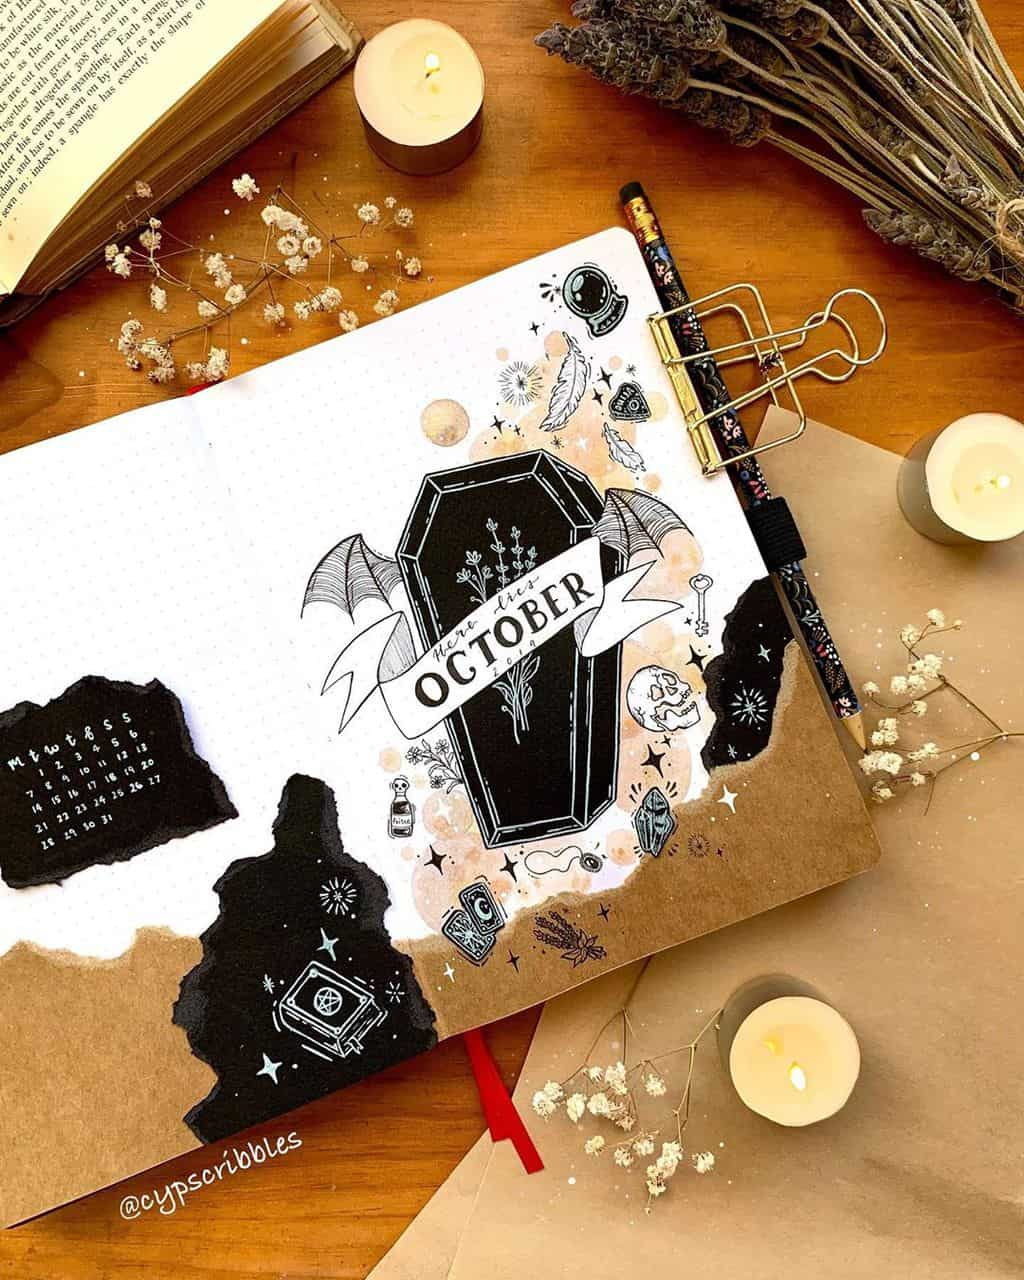 Halloween Bullet Journal Inspirations - cover page by @cypscribbles | Masha Plans